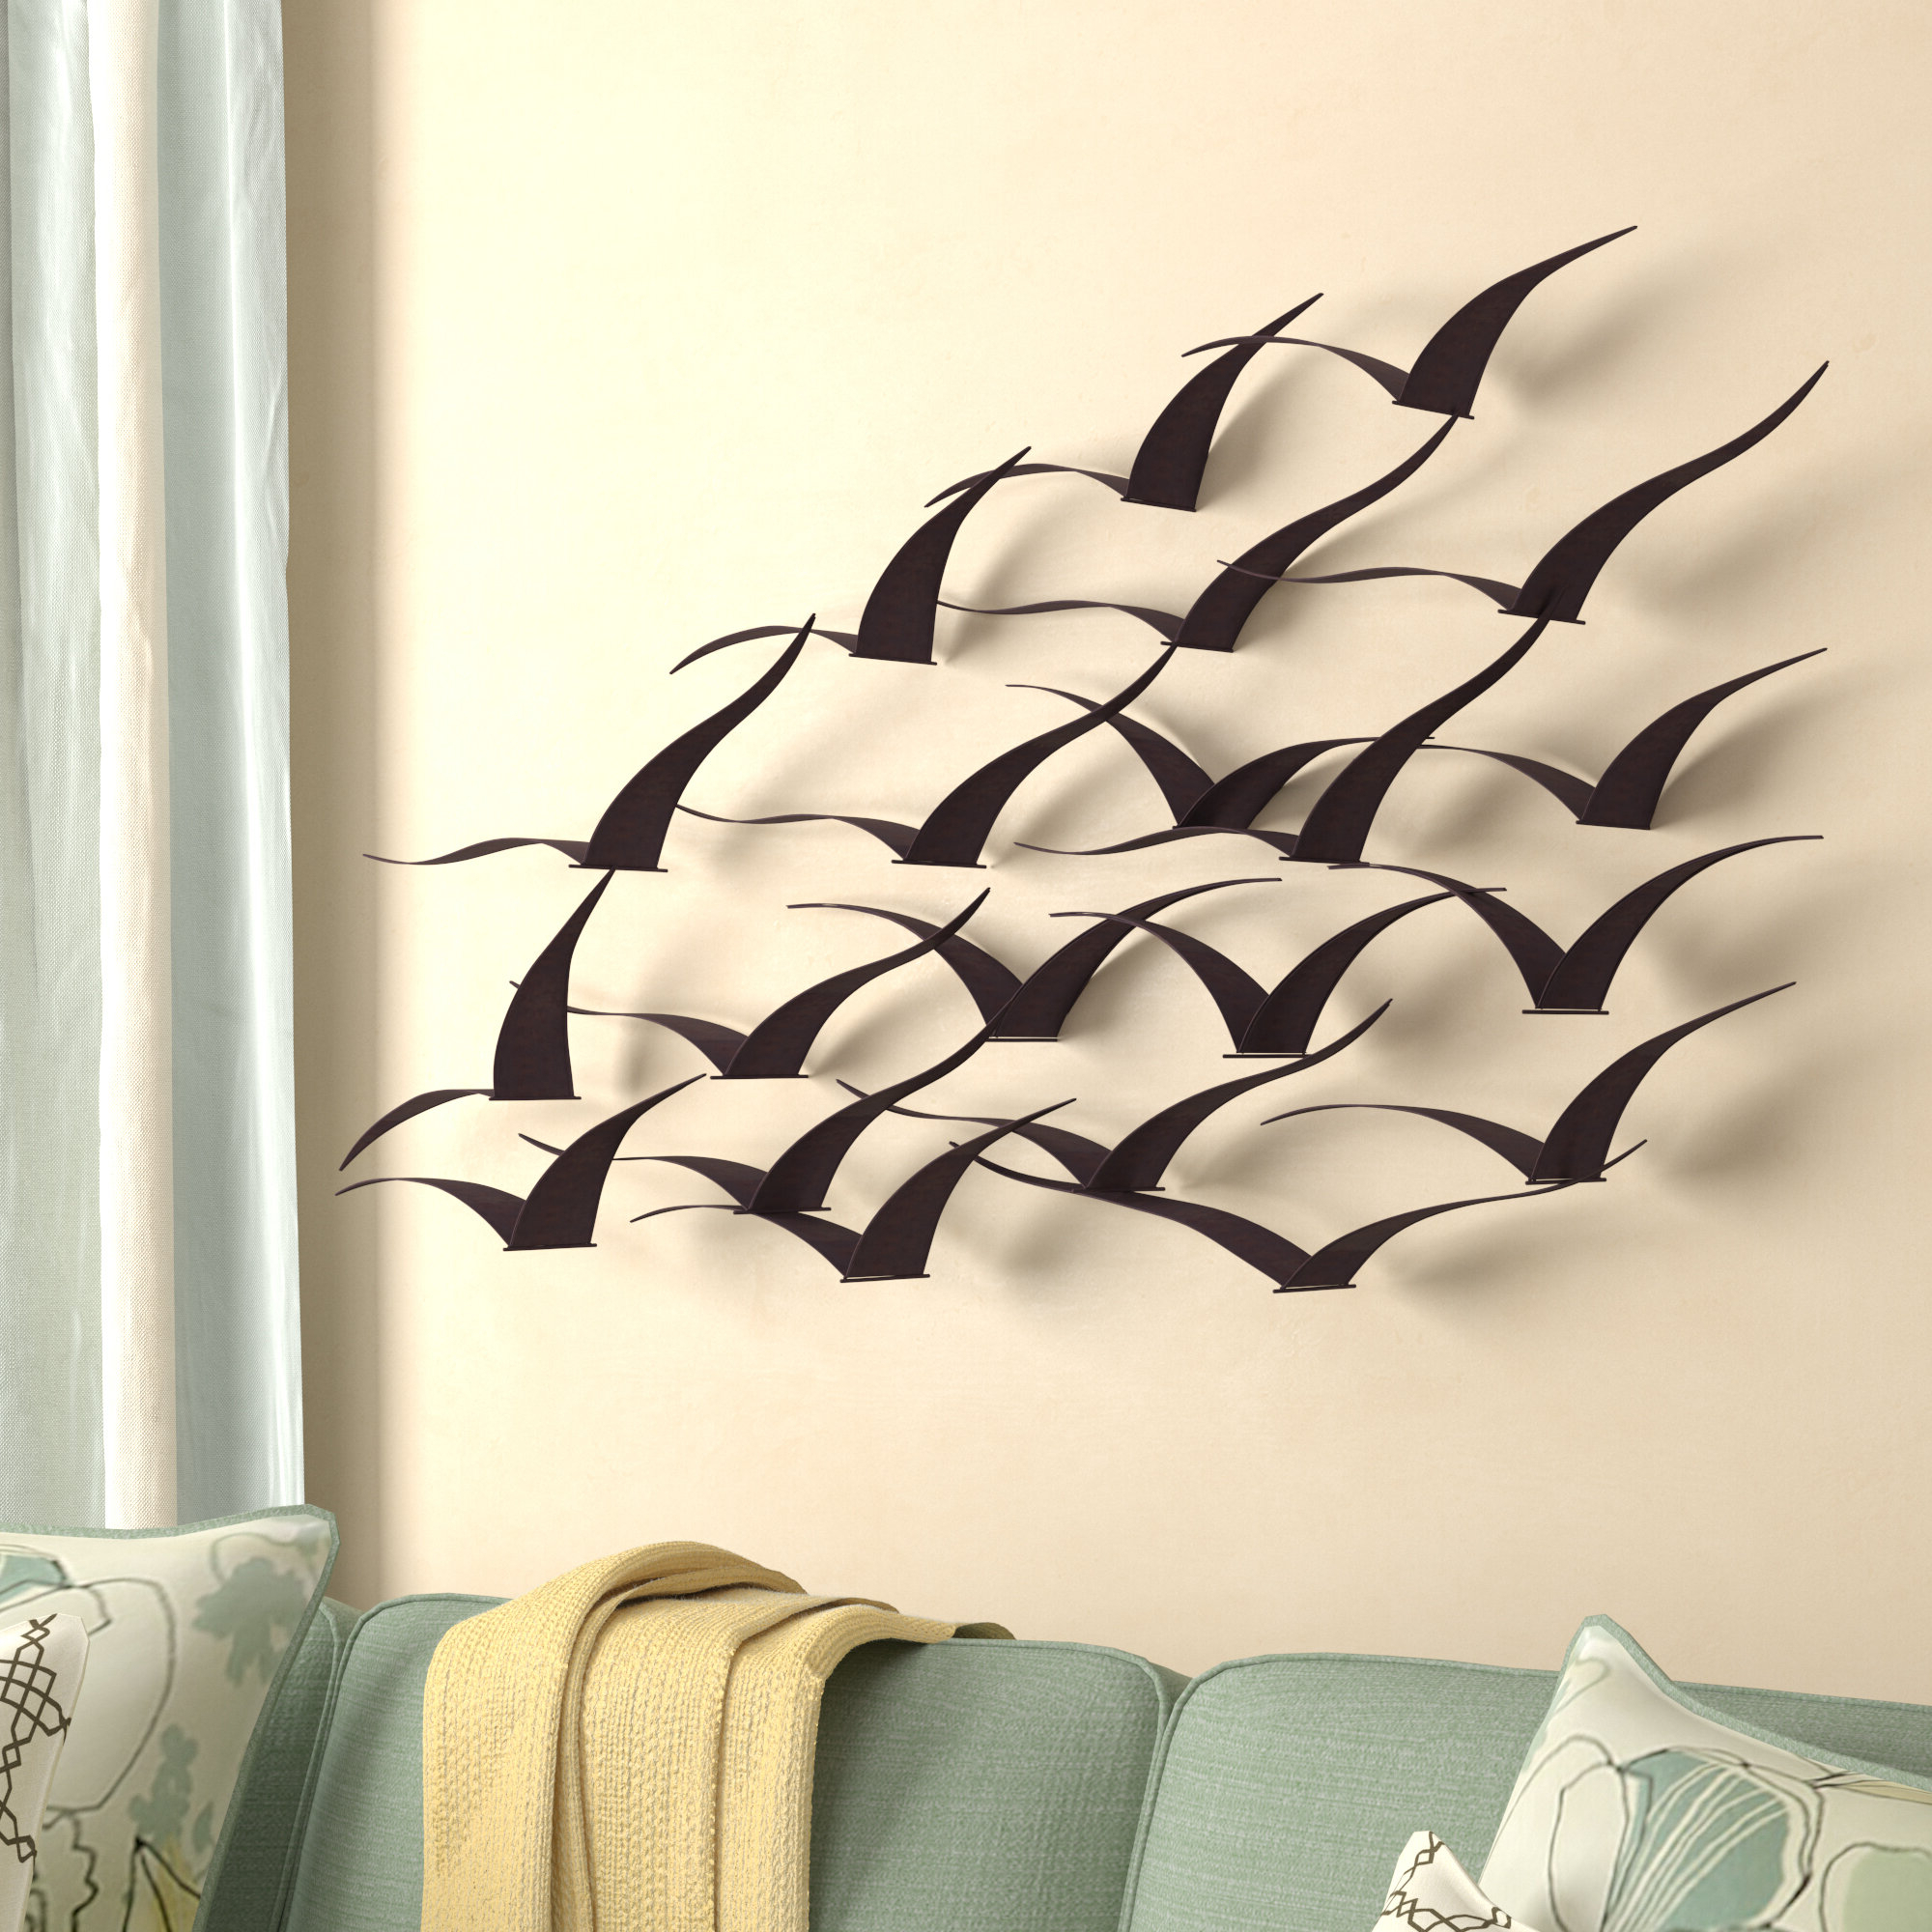 Metal Birds Wall Décor By Beachcrest Home Pertaining To Recent Metal Nautical Wall Accents (View 15 of 20)